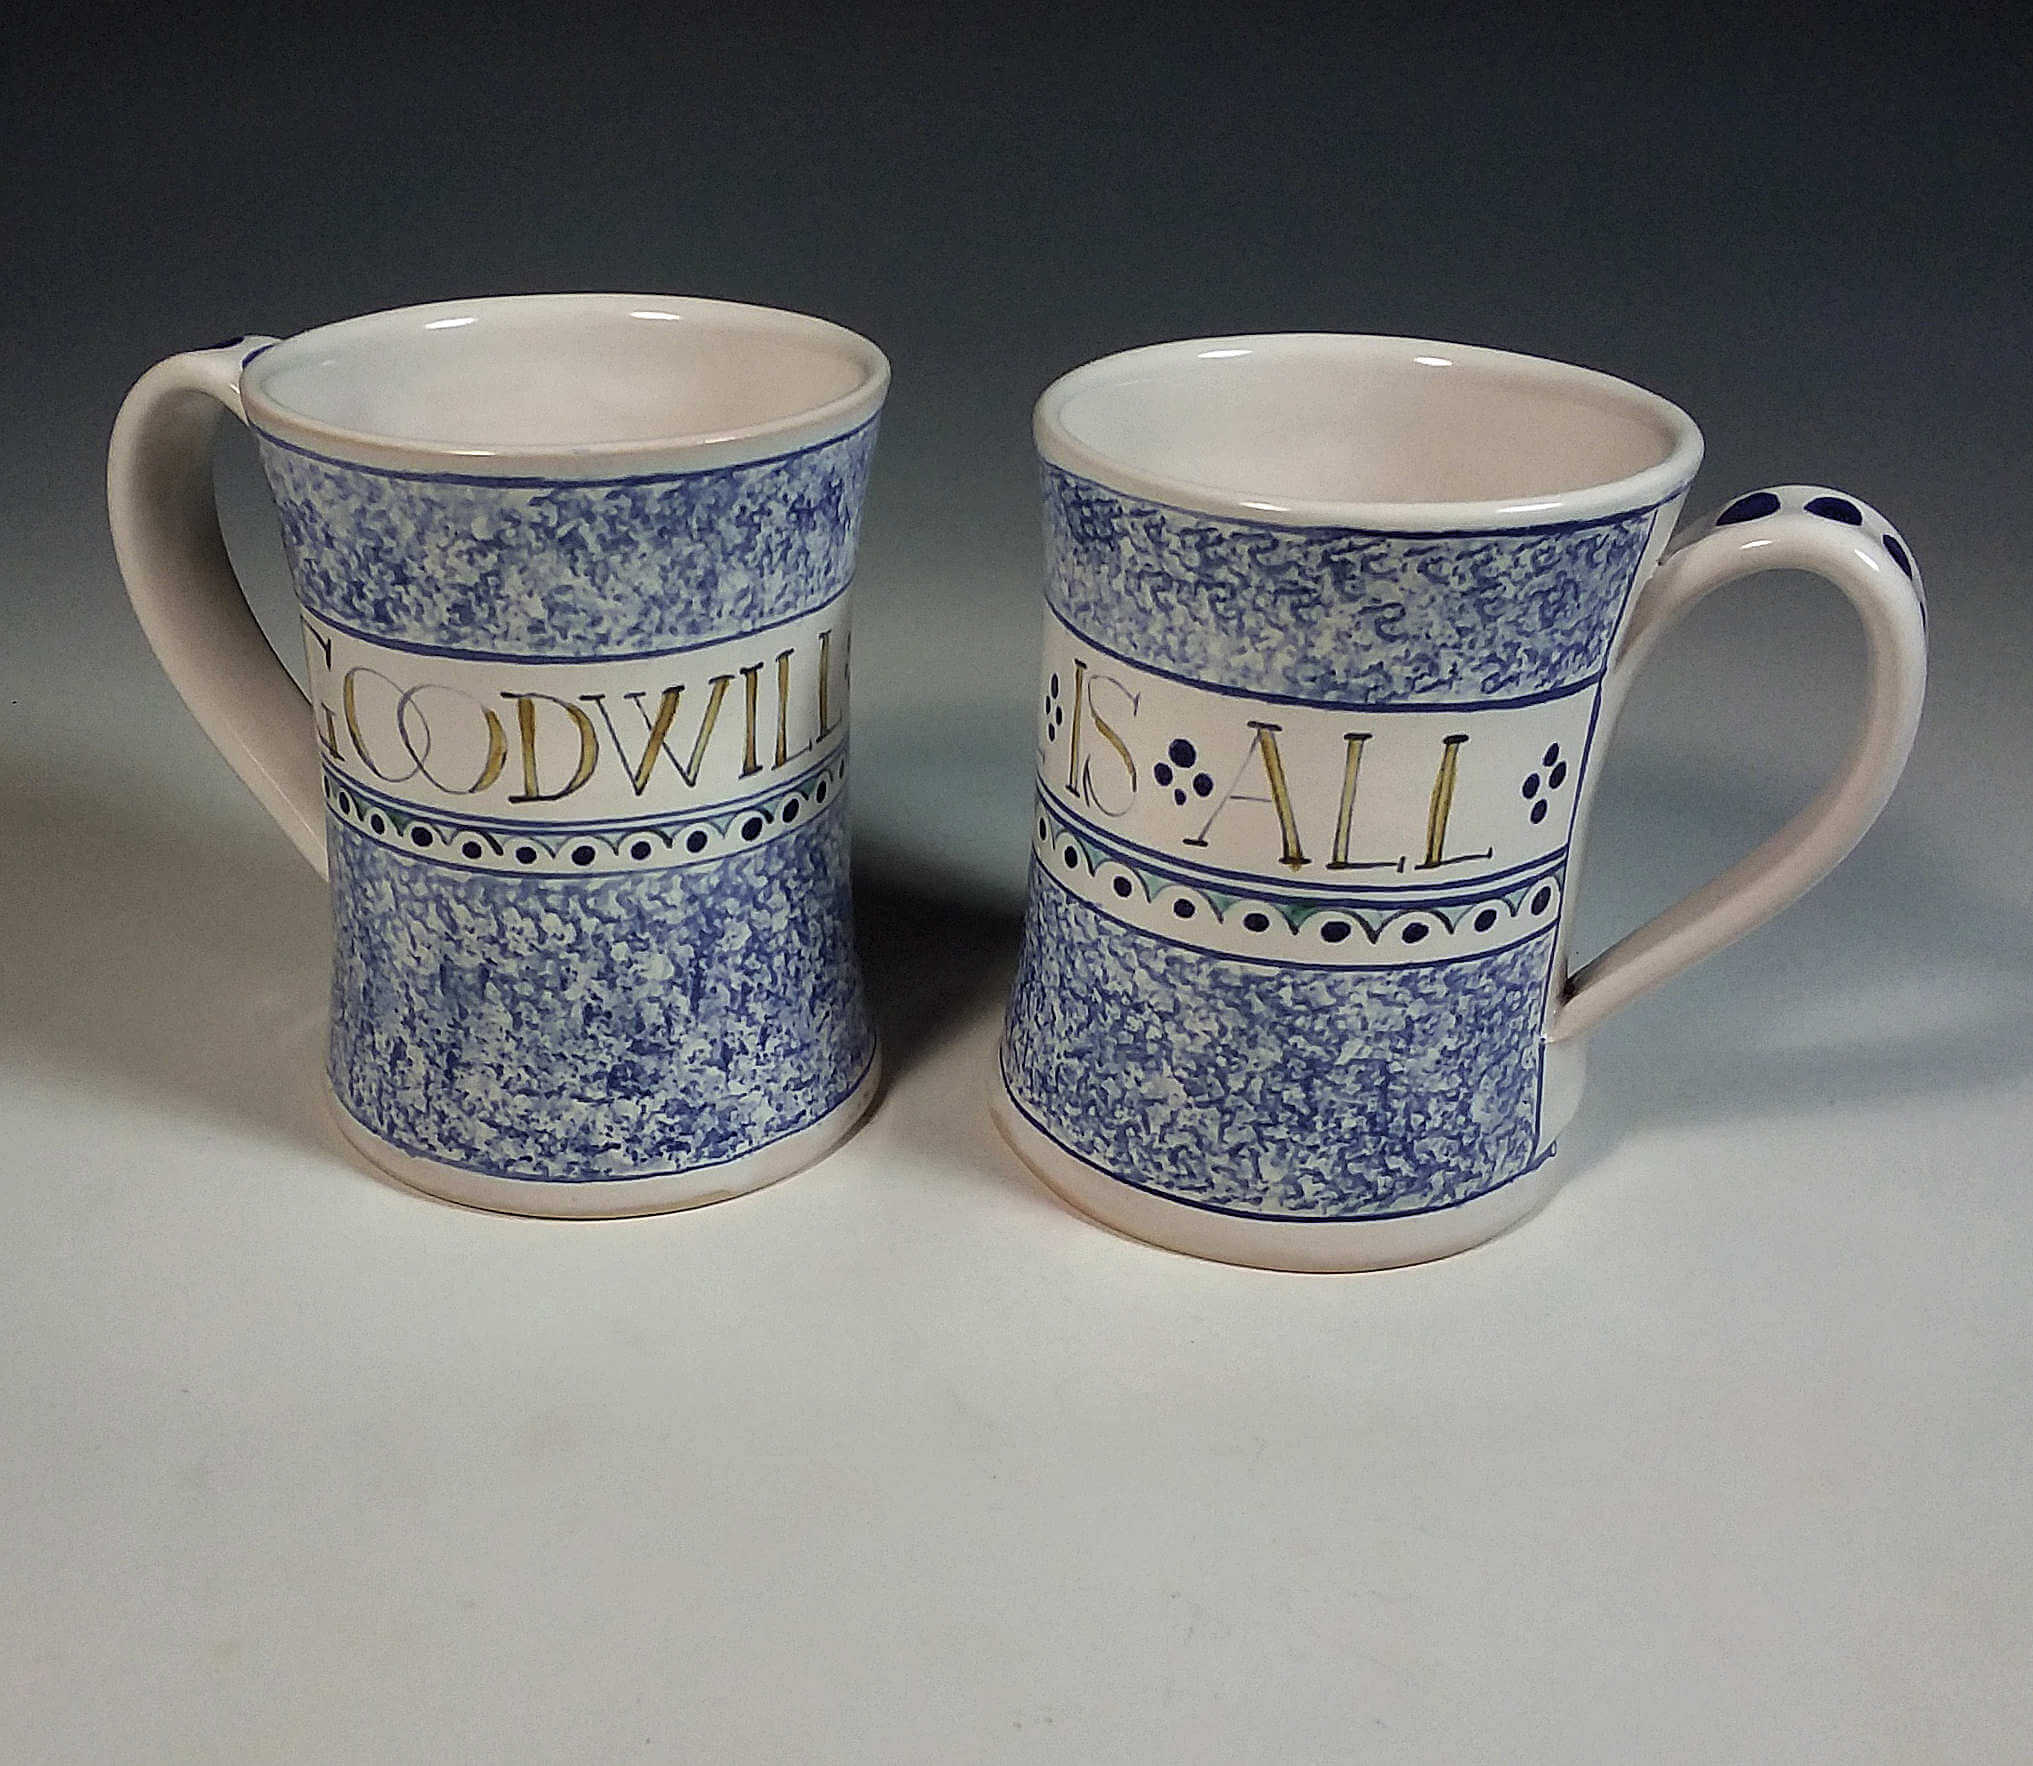 Goodwill Tankards